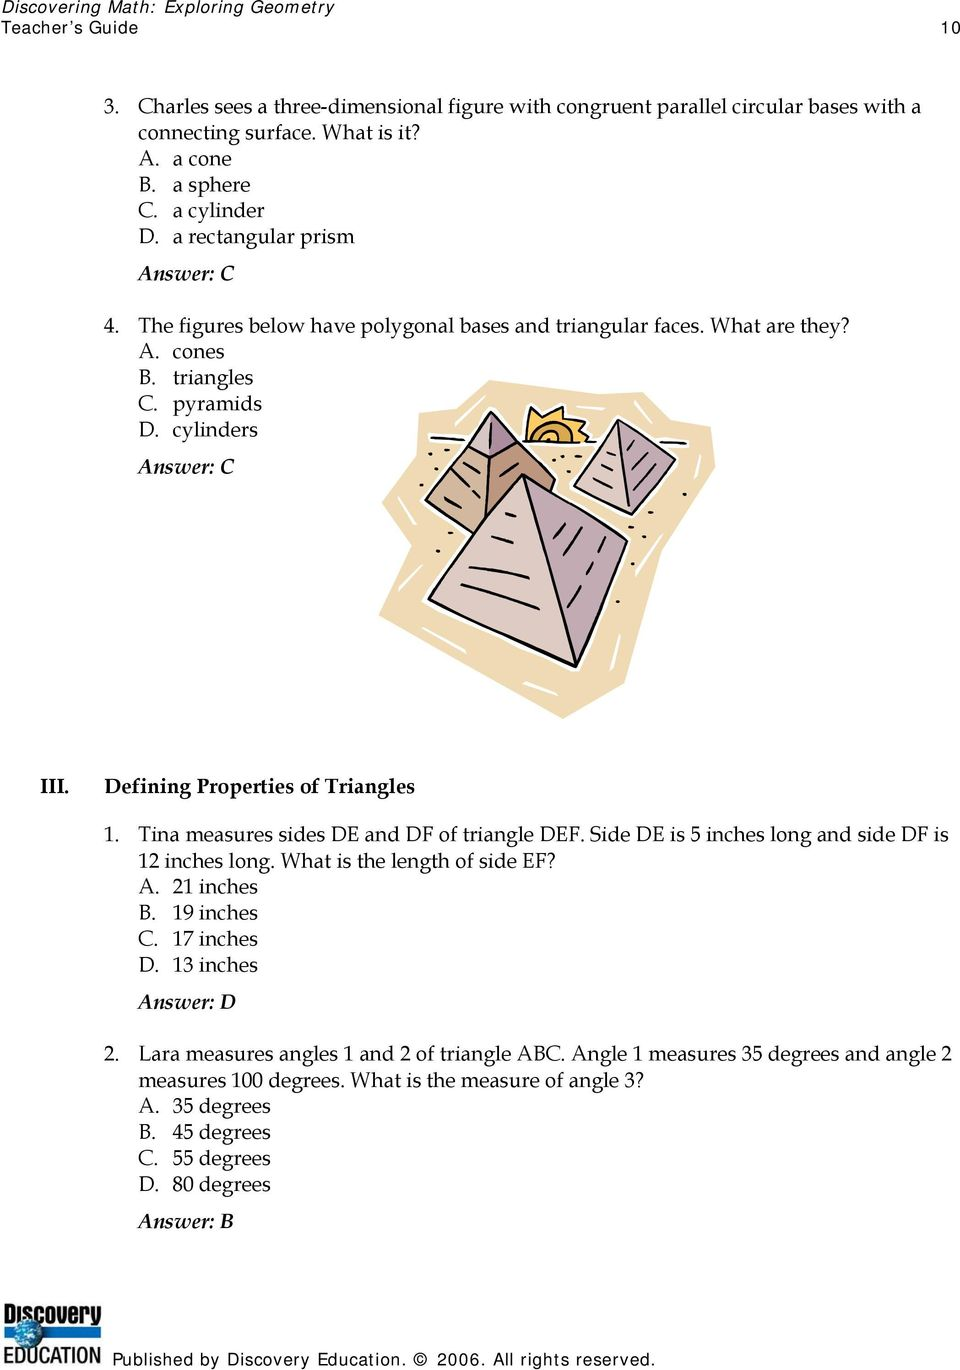 Defining Properties of Triangles 1. Tina measures sides DE and DF of triangle DEF. Side DE is 5 inches long and side DF is 12 inches long. What is the length of side EF? A. 21 inches B. 19 inches C.